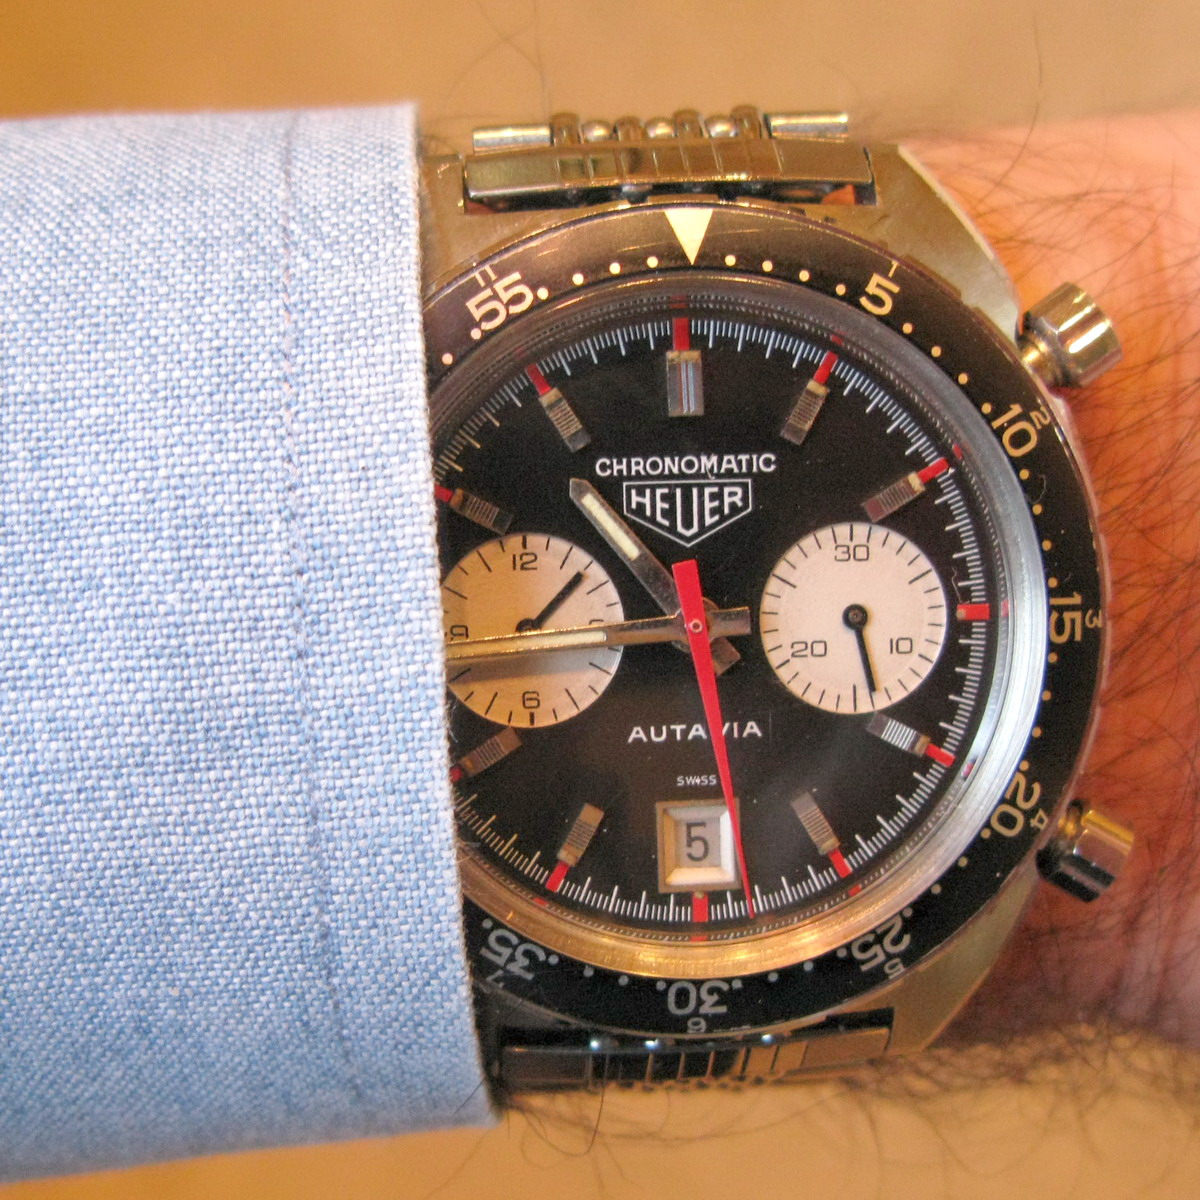 Heuer Autavia Chronomatic